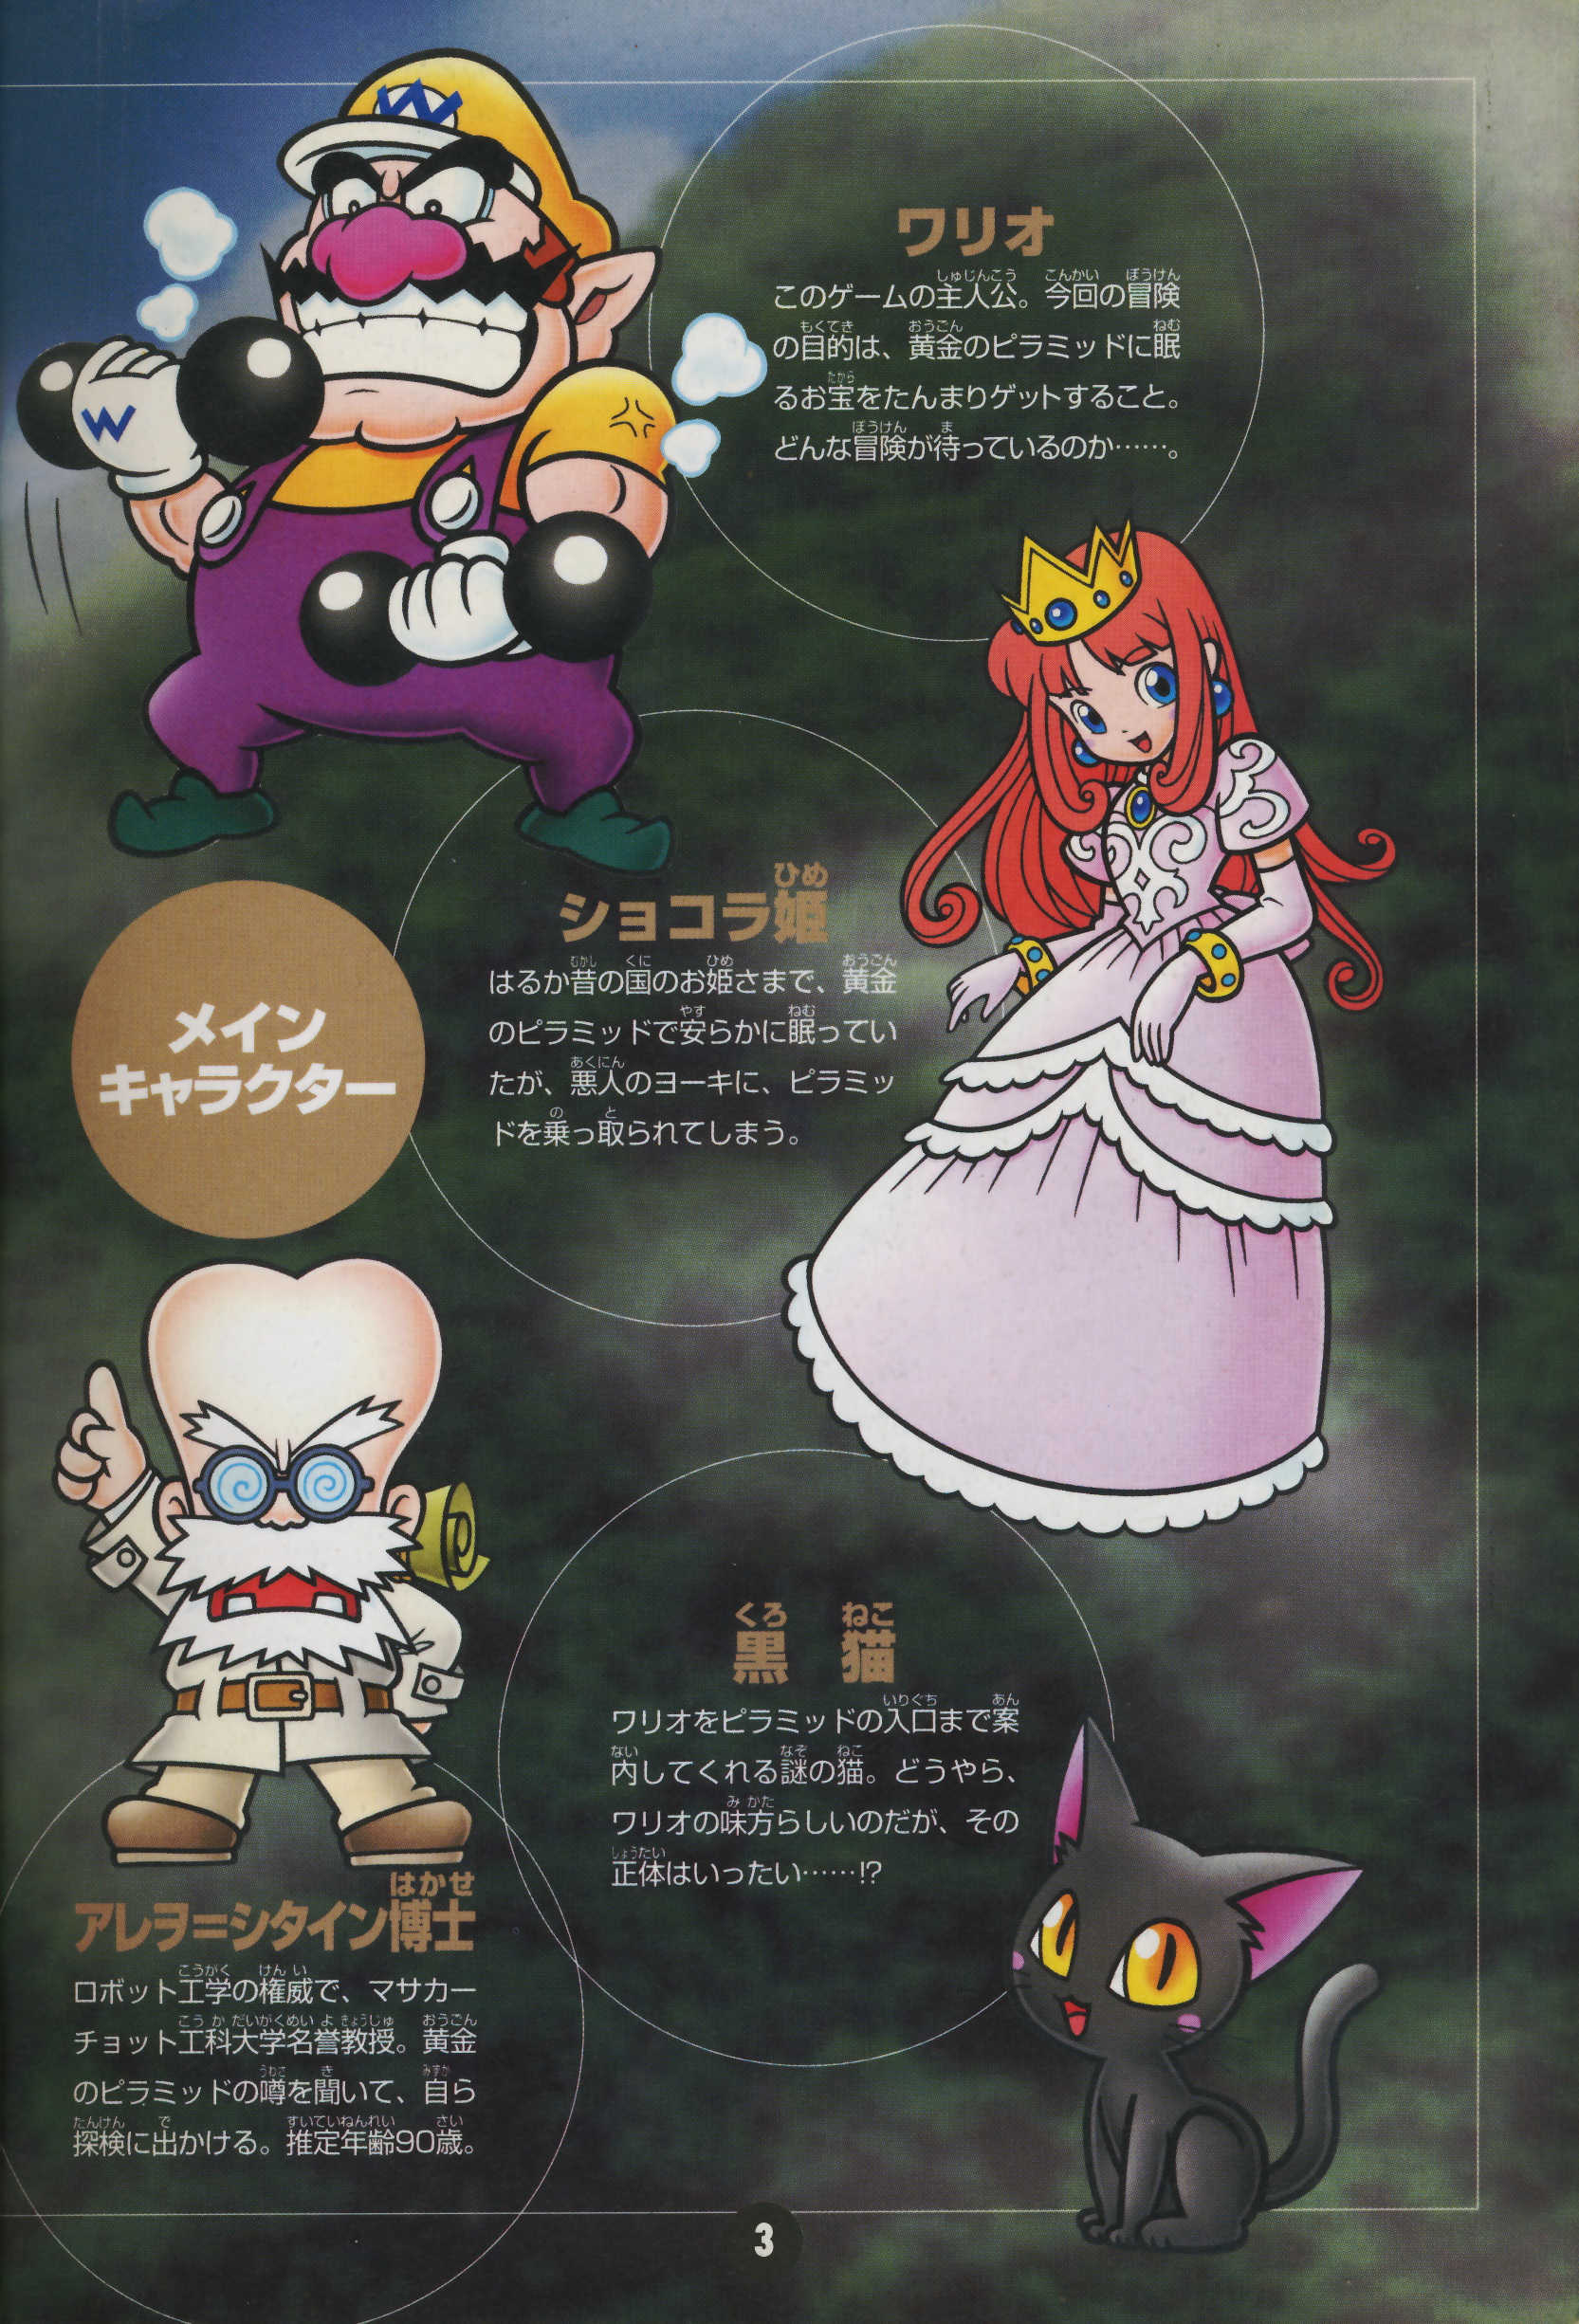 wario land 4 supporting cast